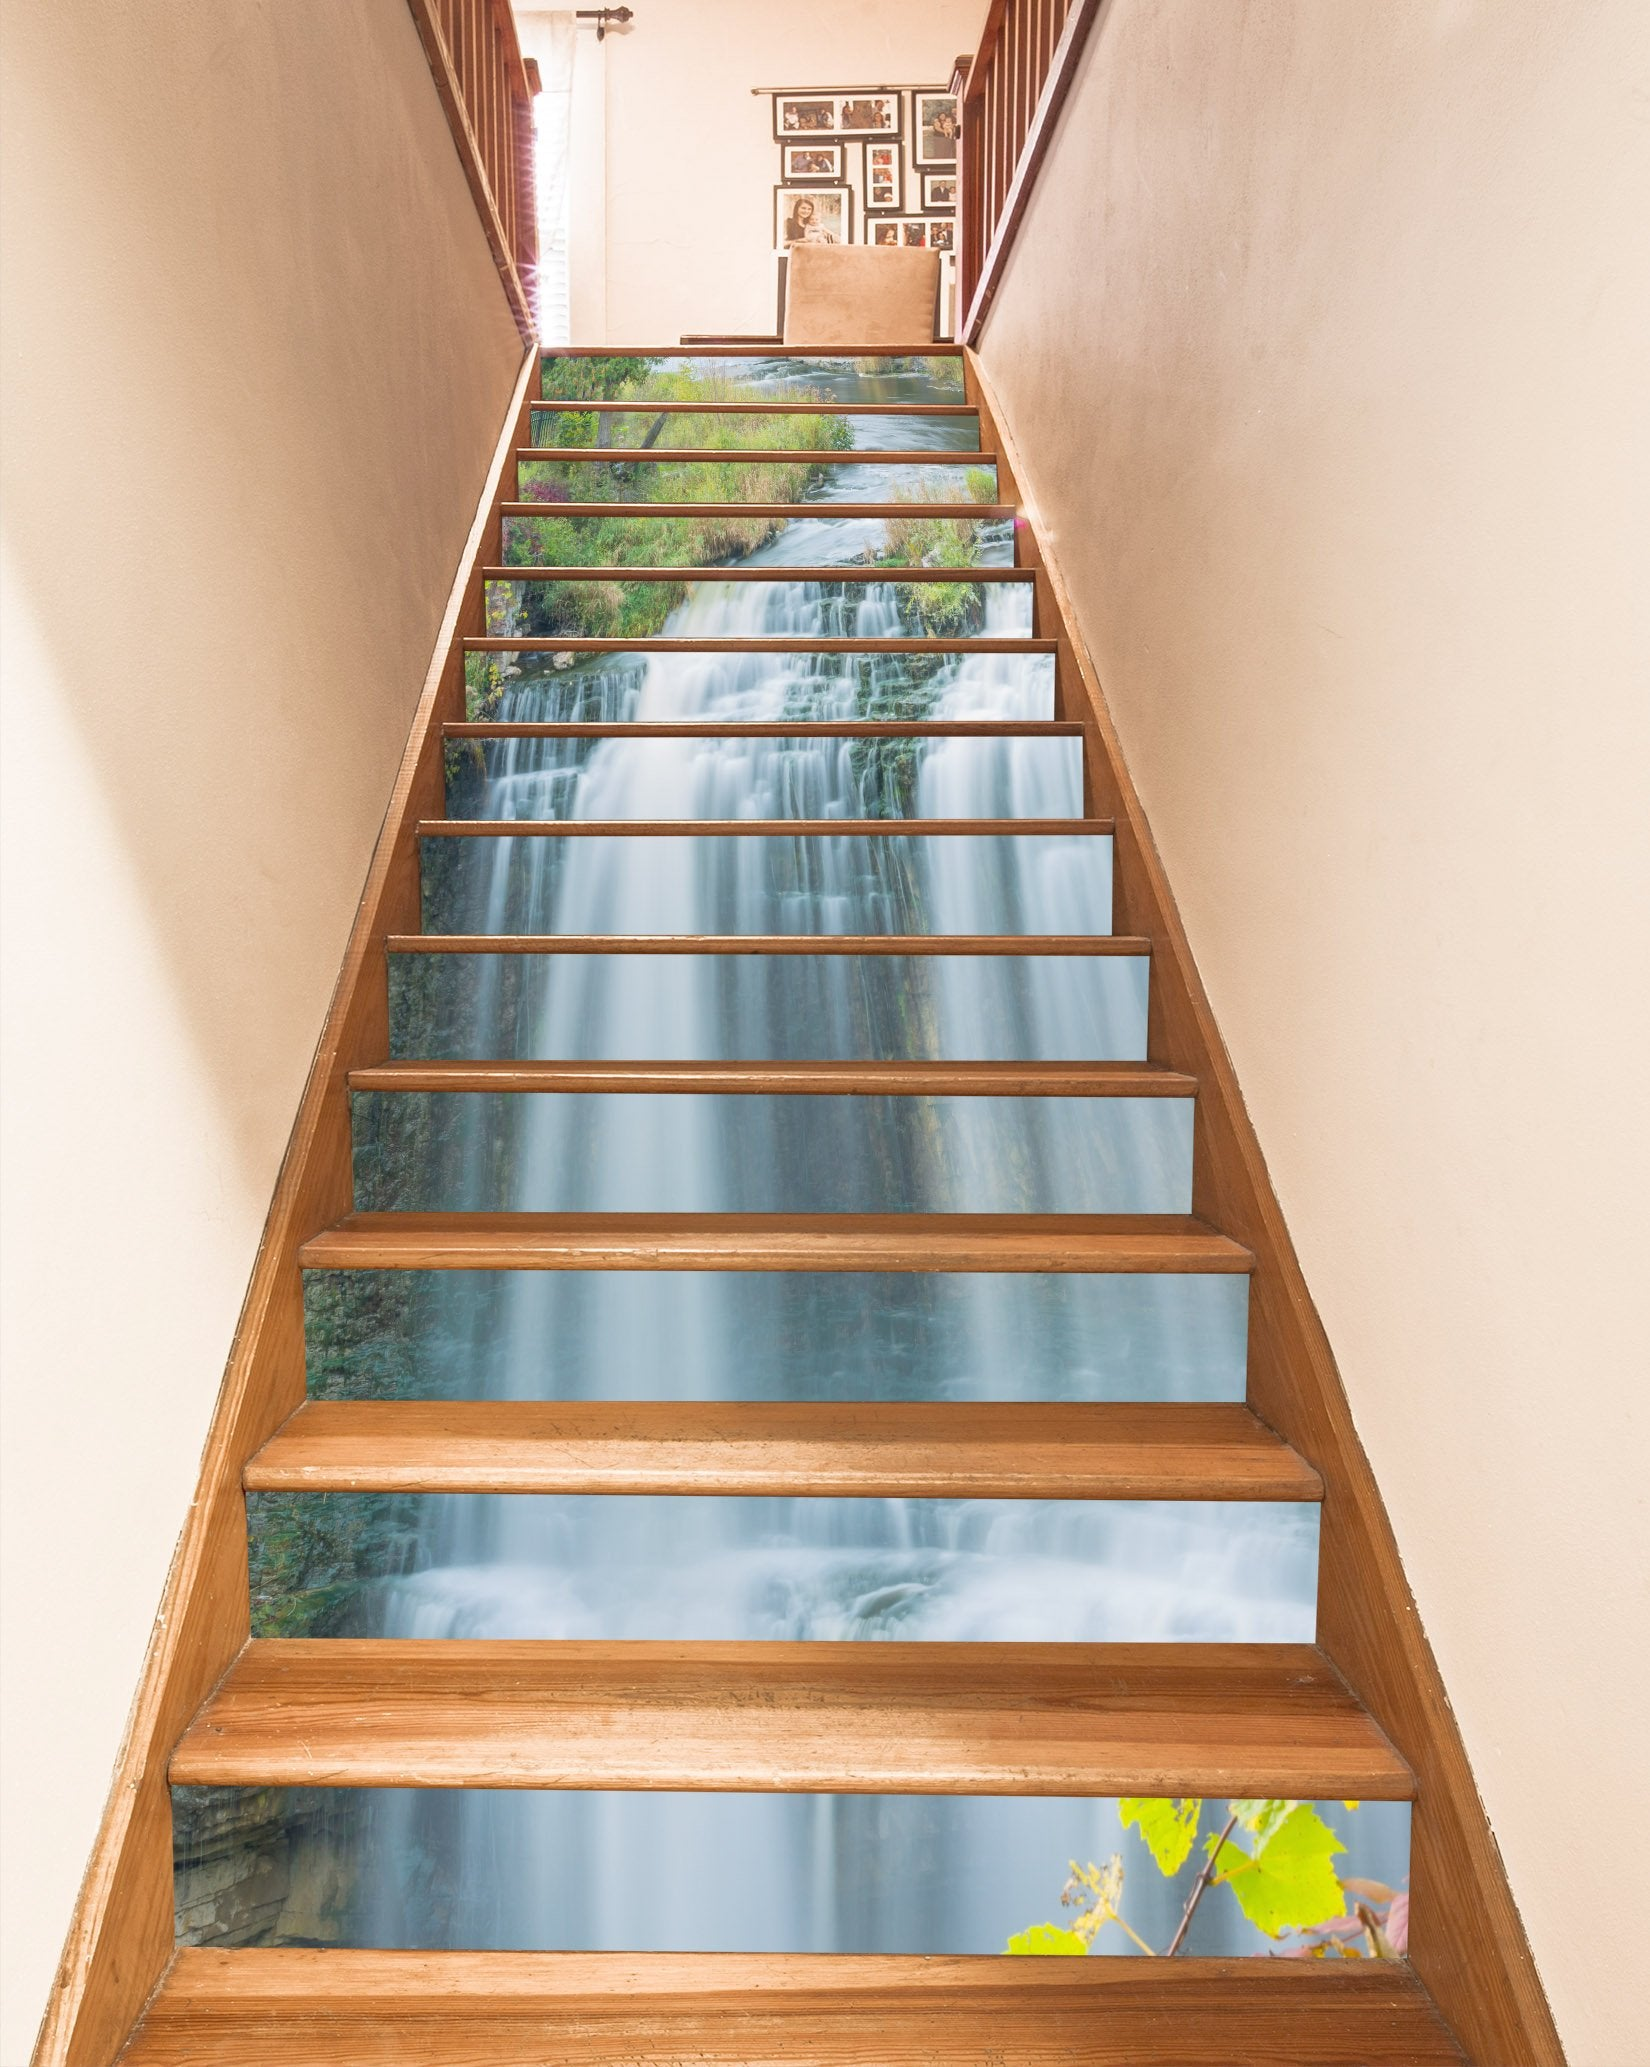 3D River Waterfalls 1597 Stair Risers Wallpaper AJ Wallpaper